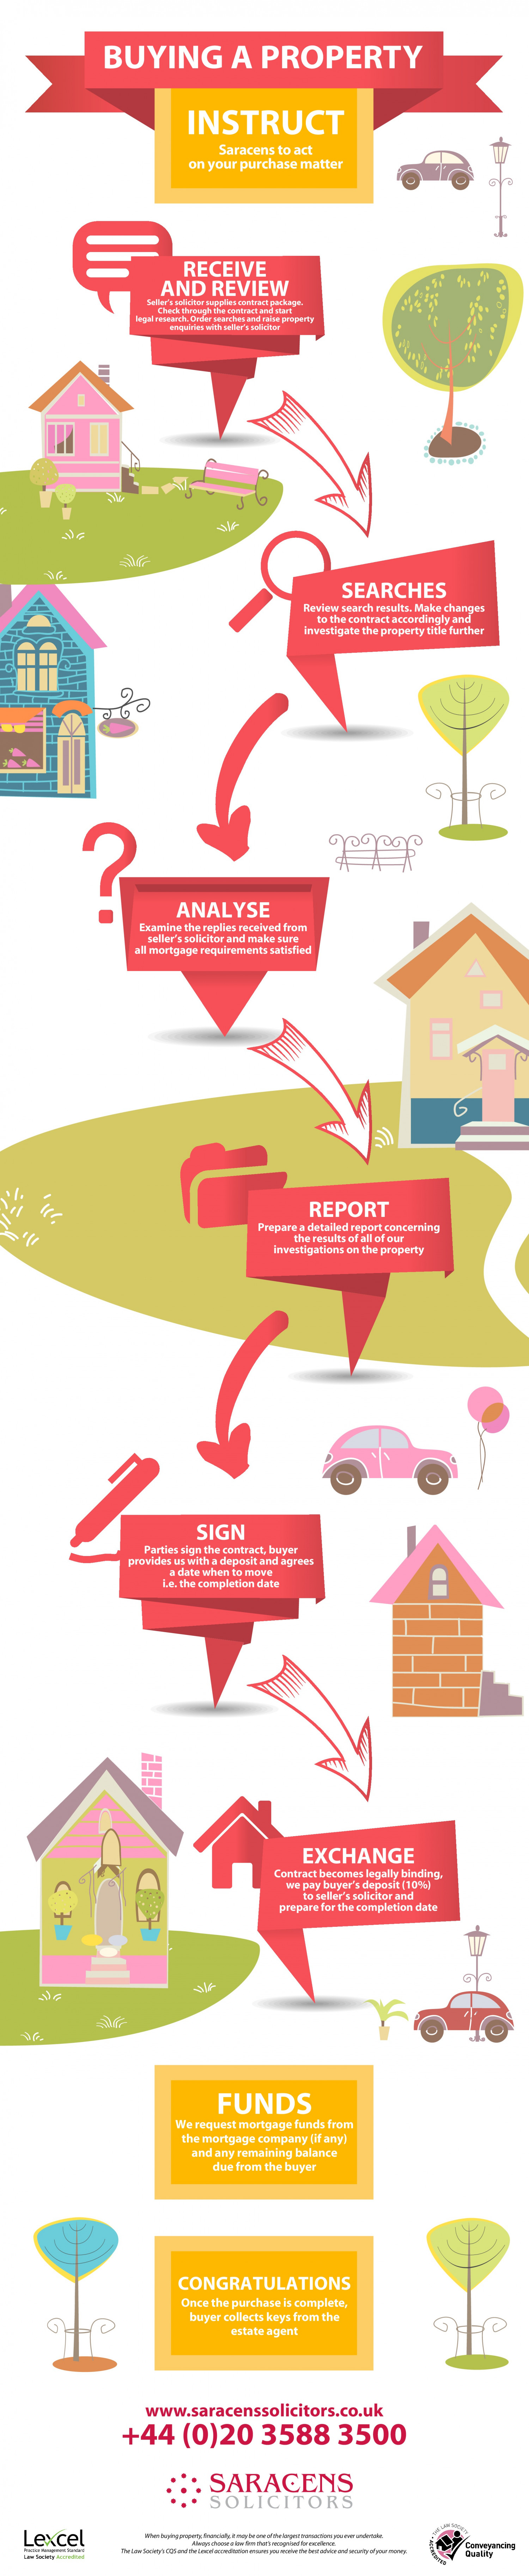 Buying A Property- What Should a Solicitor do? Infographic